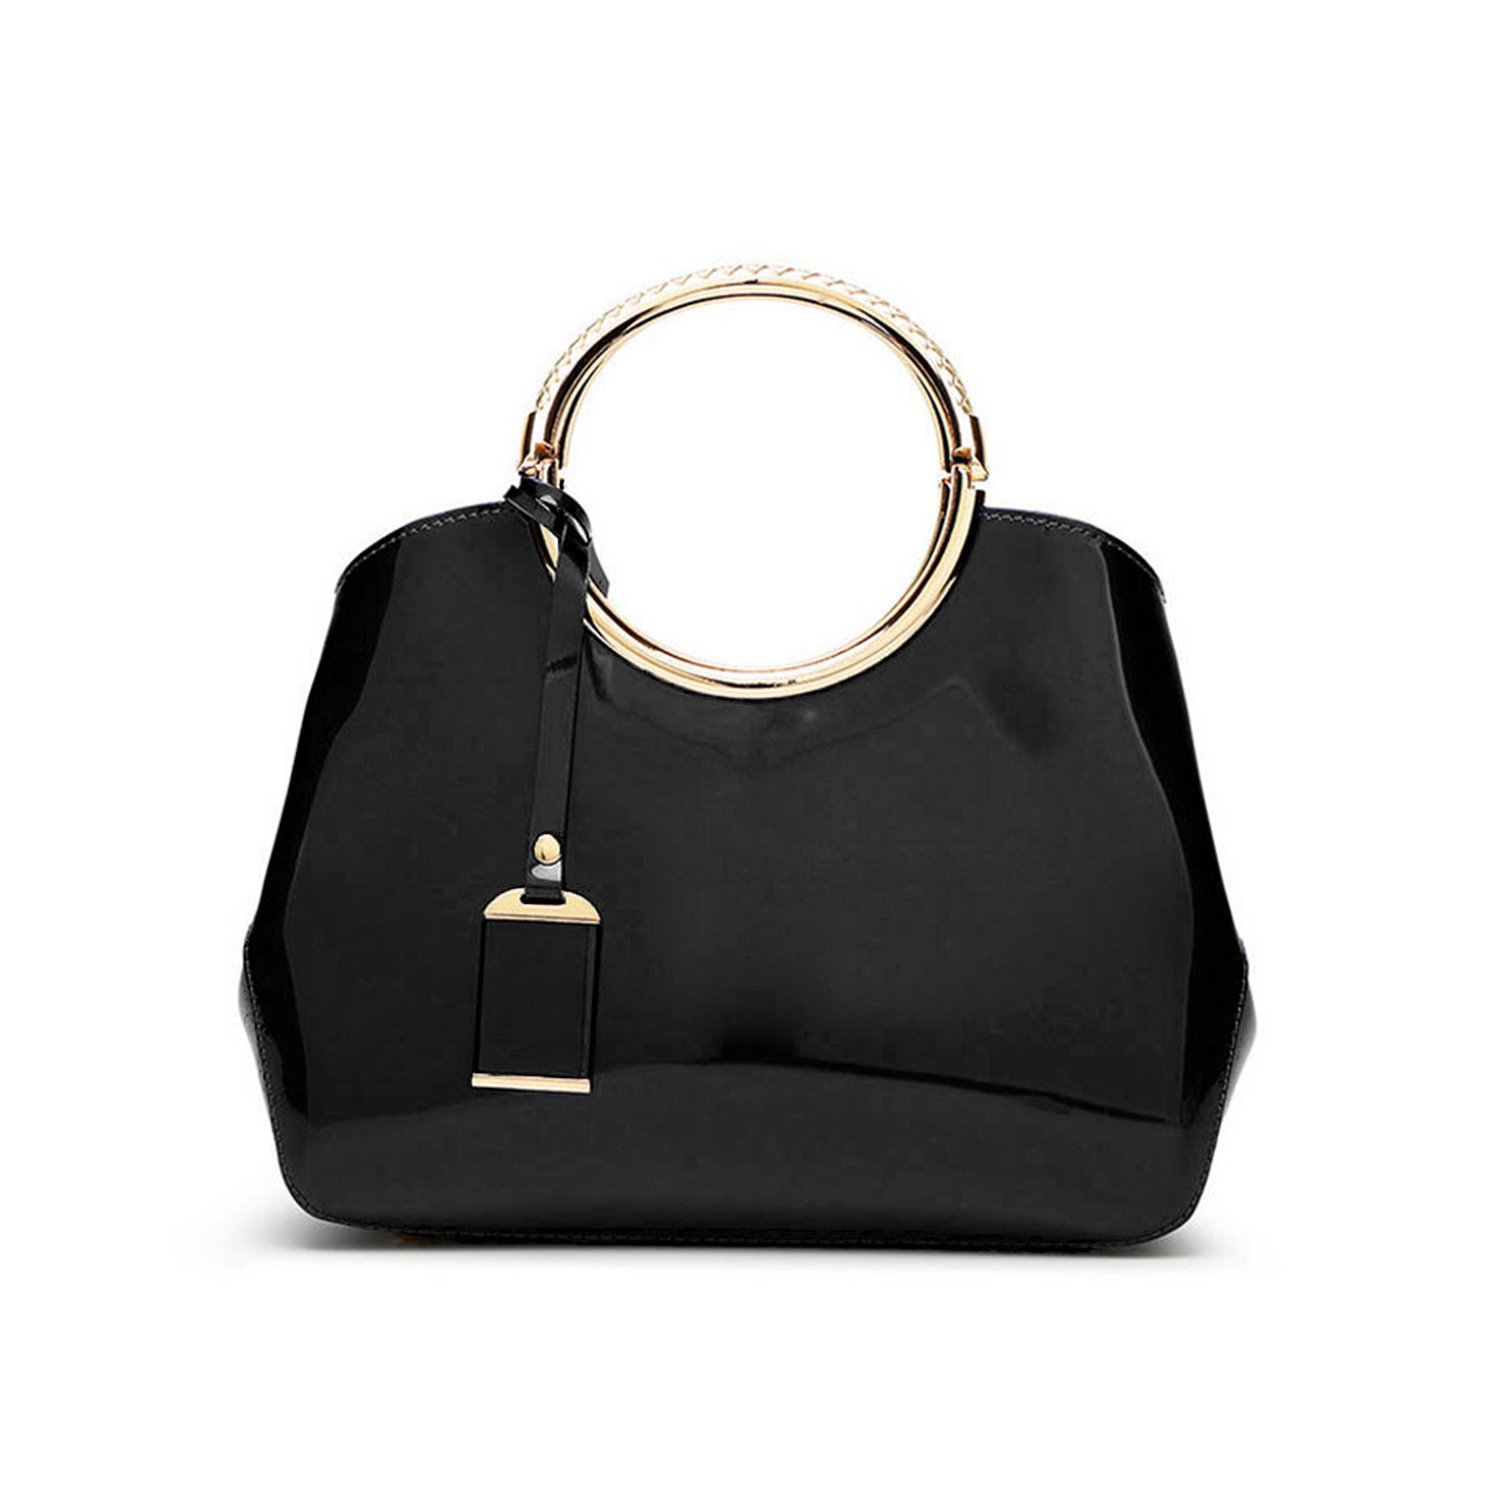 86b1ab8e5 Vezela® PU Leather Casual Satchel Shell Bag - Black Color Designer Glossy  Hand Bags for Women Girls  Amazon.in  Shoes   Handbags